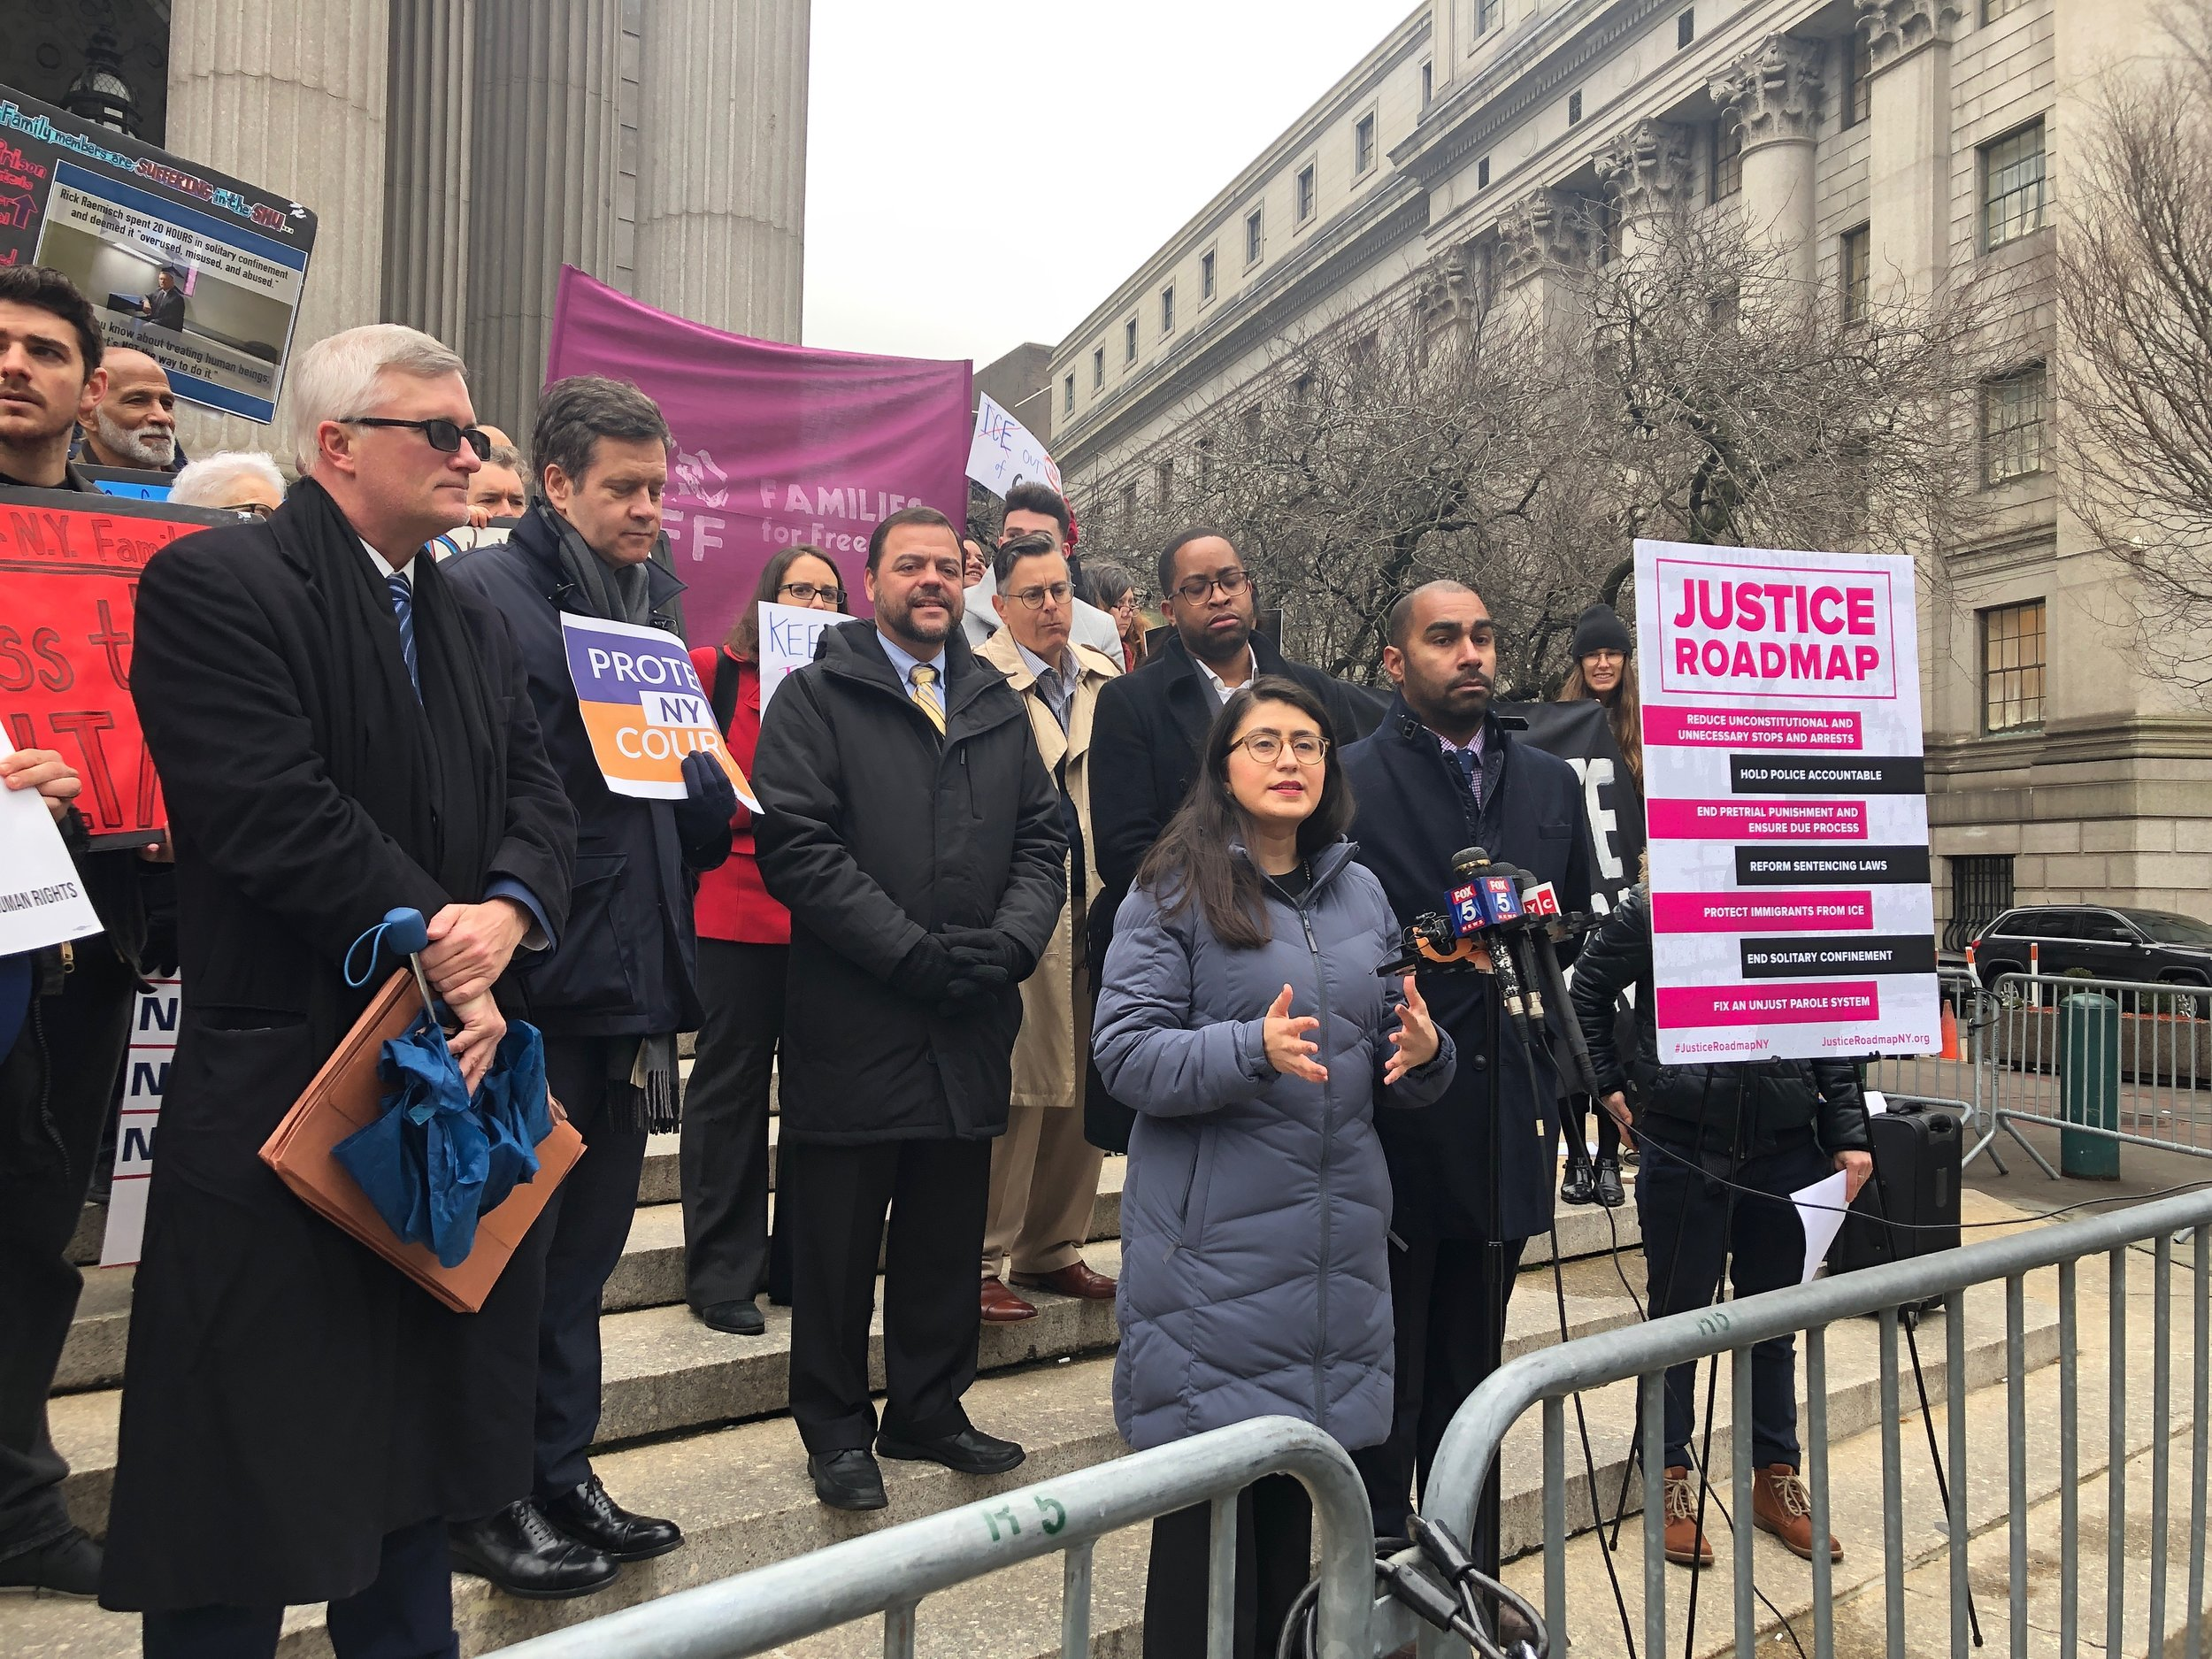 """State Sen. Jessica Ramos from Queens' District 13 speaks in support of the """"Justice Roadmap,"""" a slate of criminal justice reform bills and priorities developed by a coalition of community groups. Photo via Ramos' Office"""